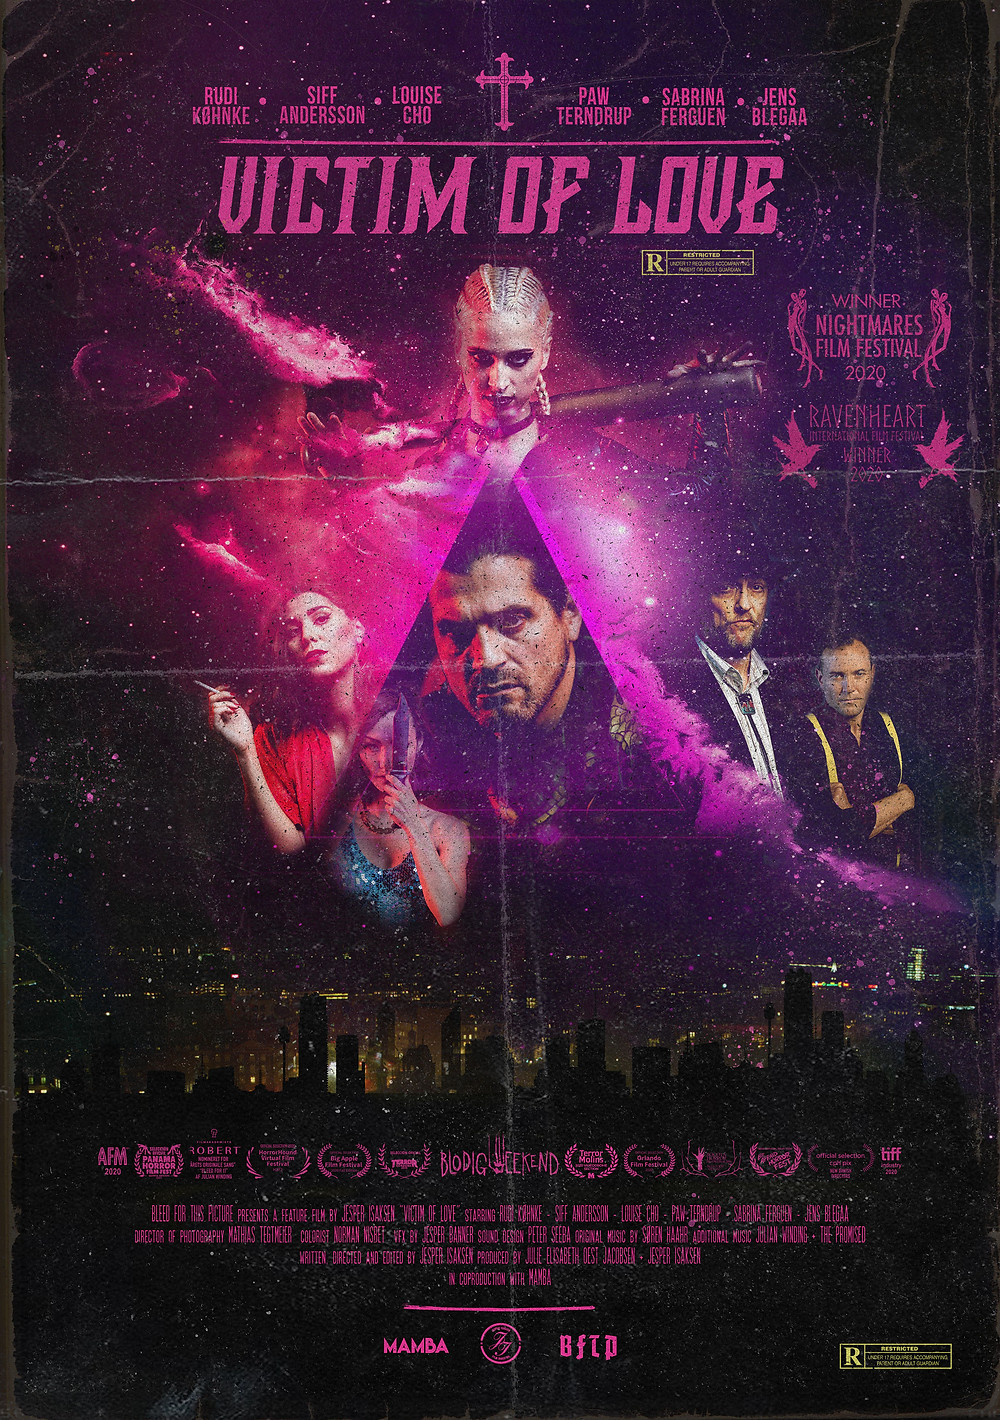 Poster for Victim of Love showing protagonists.